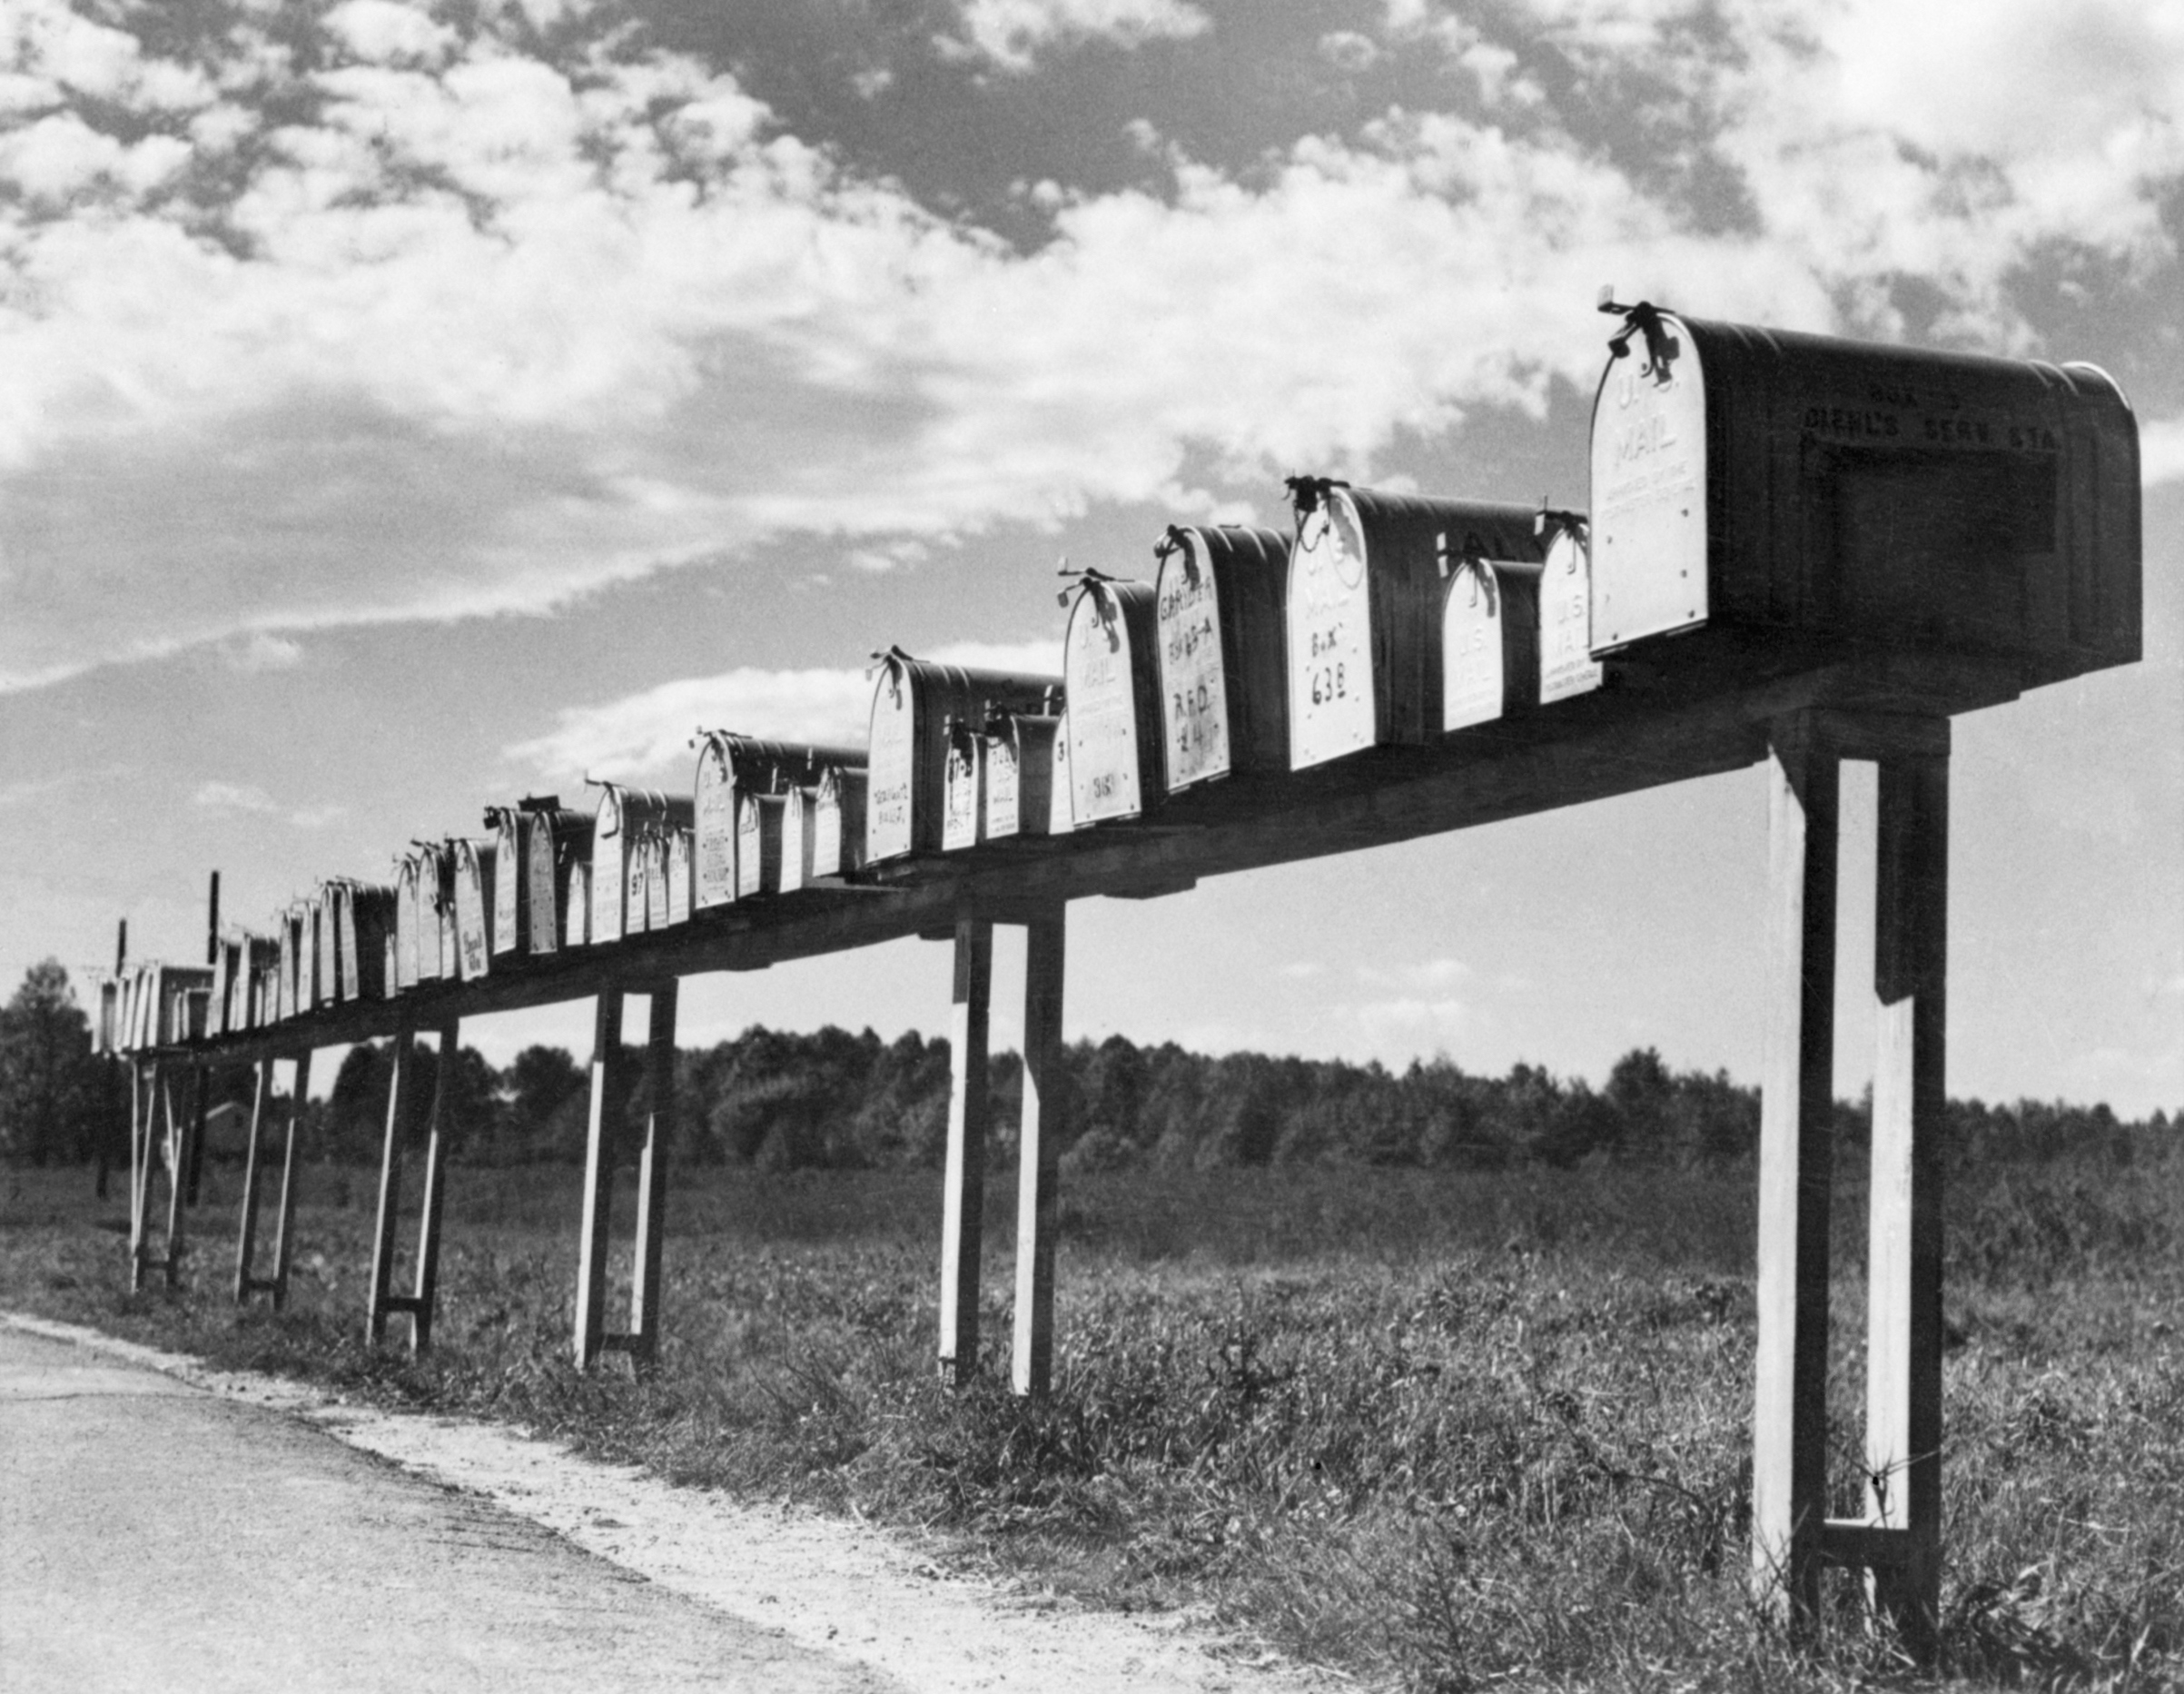 Mailboxes on a country road, circa 1940